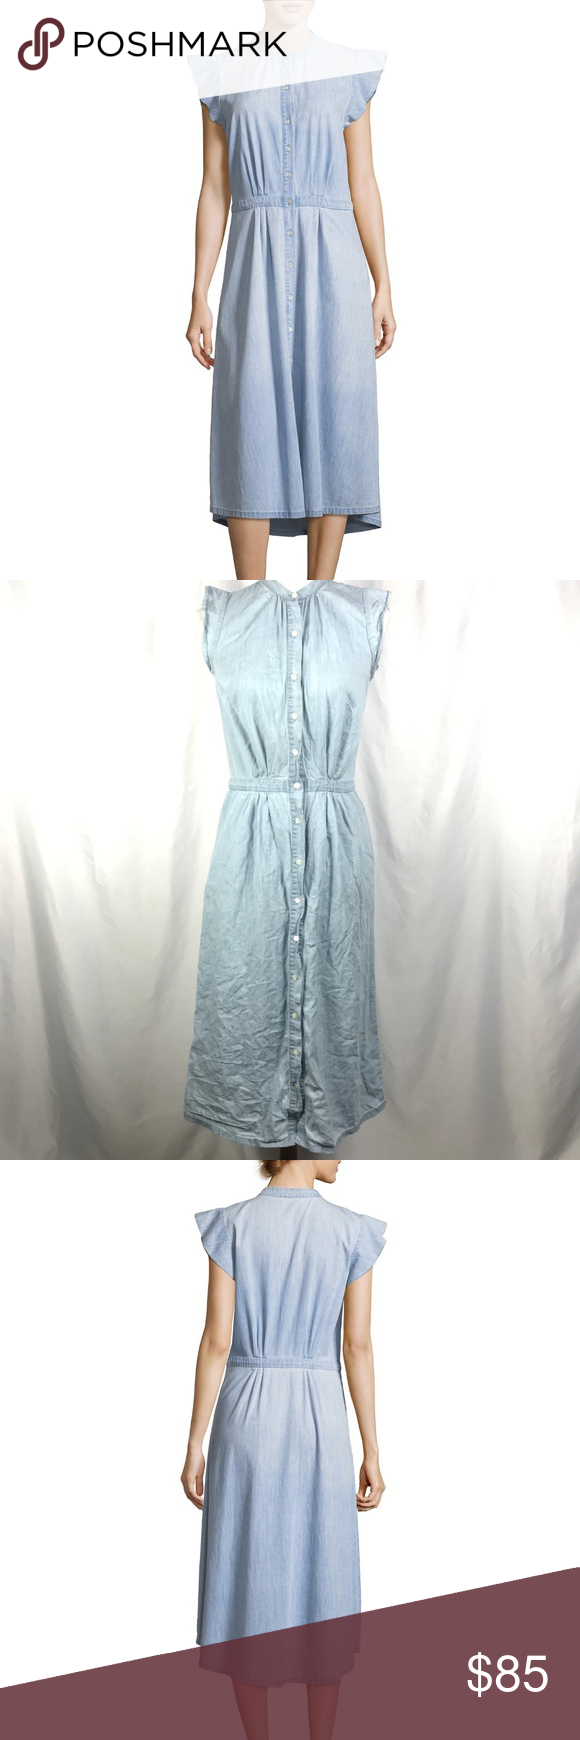 120bef0dfc Joie Awel Chambray Dress Button-Front Midi Sleevel Joie Awel Chambray Dress  Button-Front